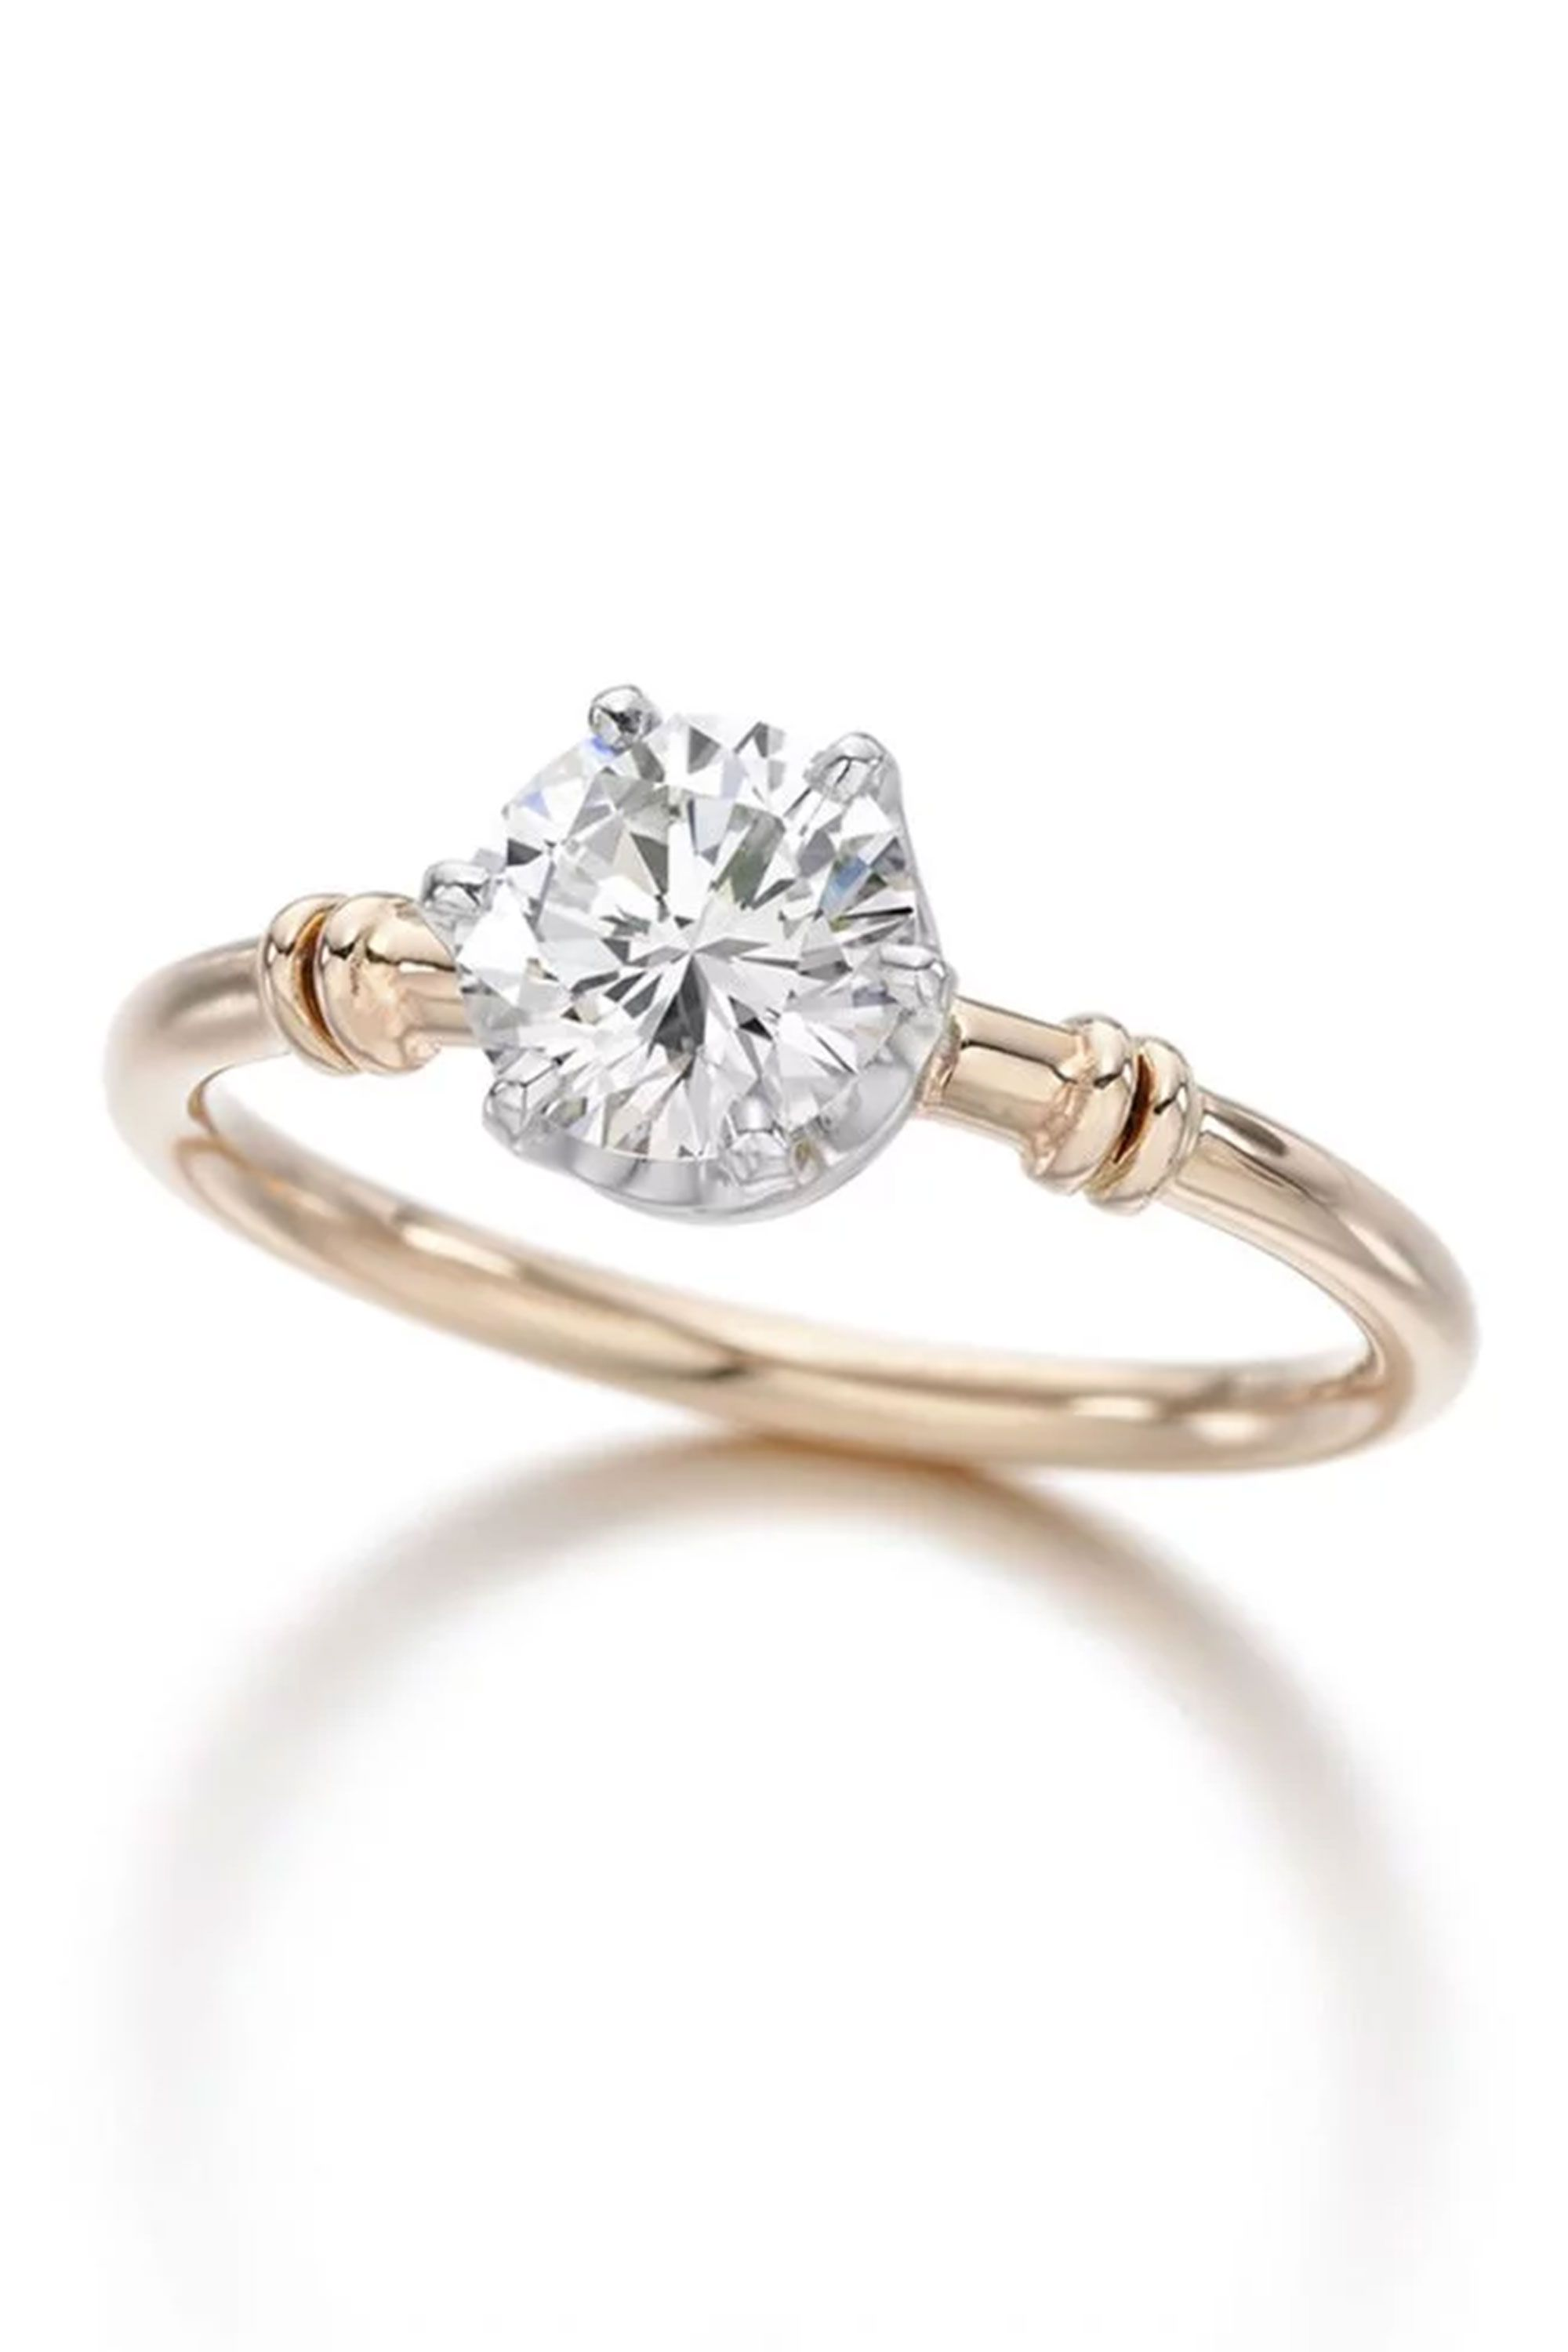 Best engagement rings - Jessica McCormack